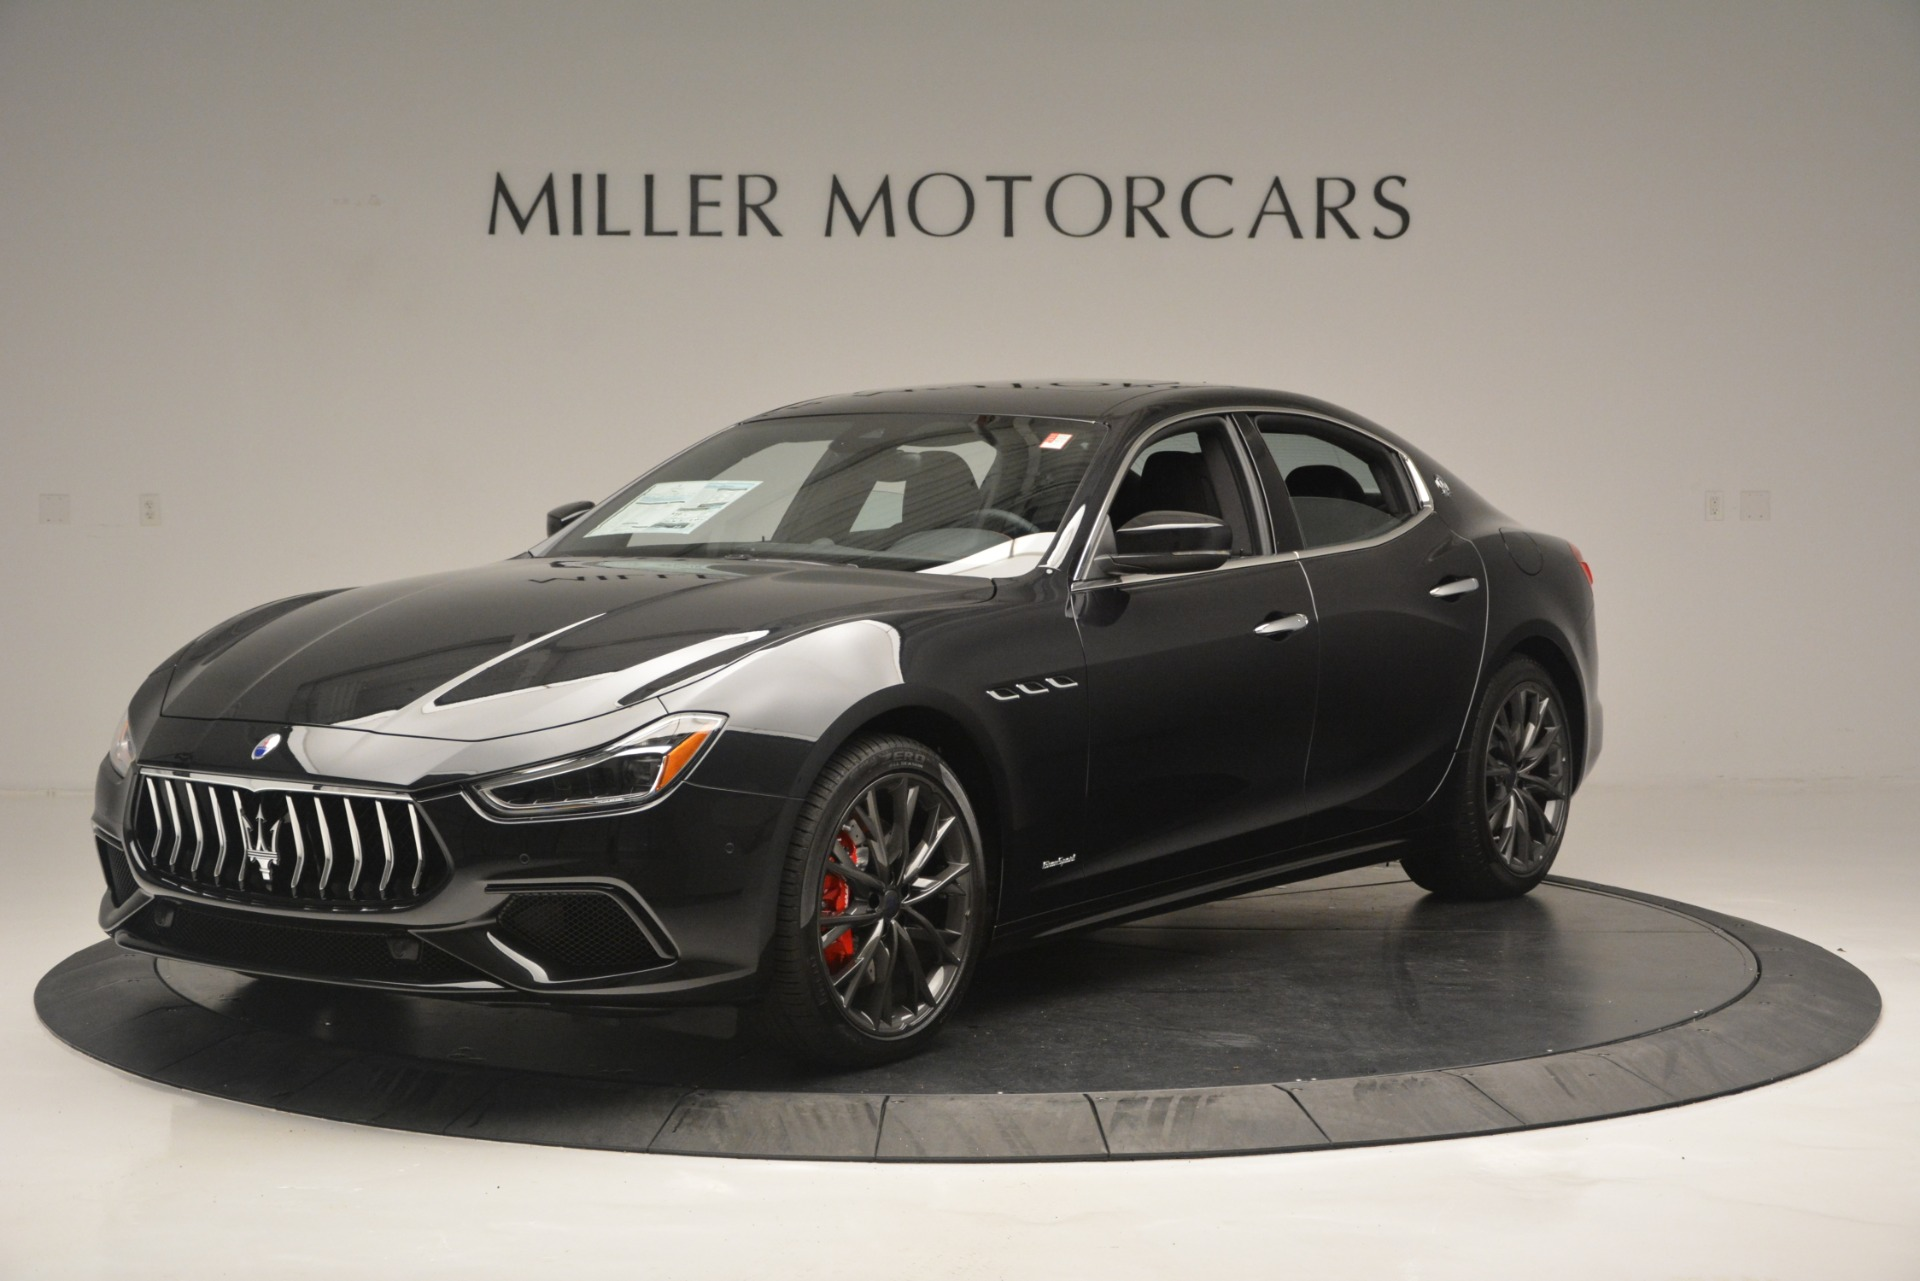 New 2019 Maserati Ghibli S Q4 GranSport For Sale In Westport, CT 2635_p2